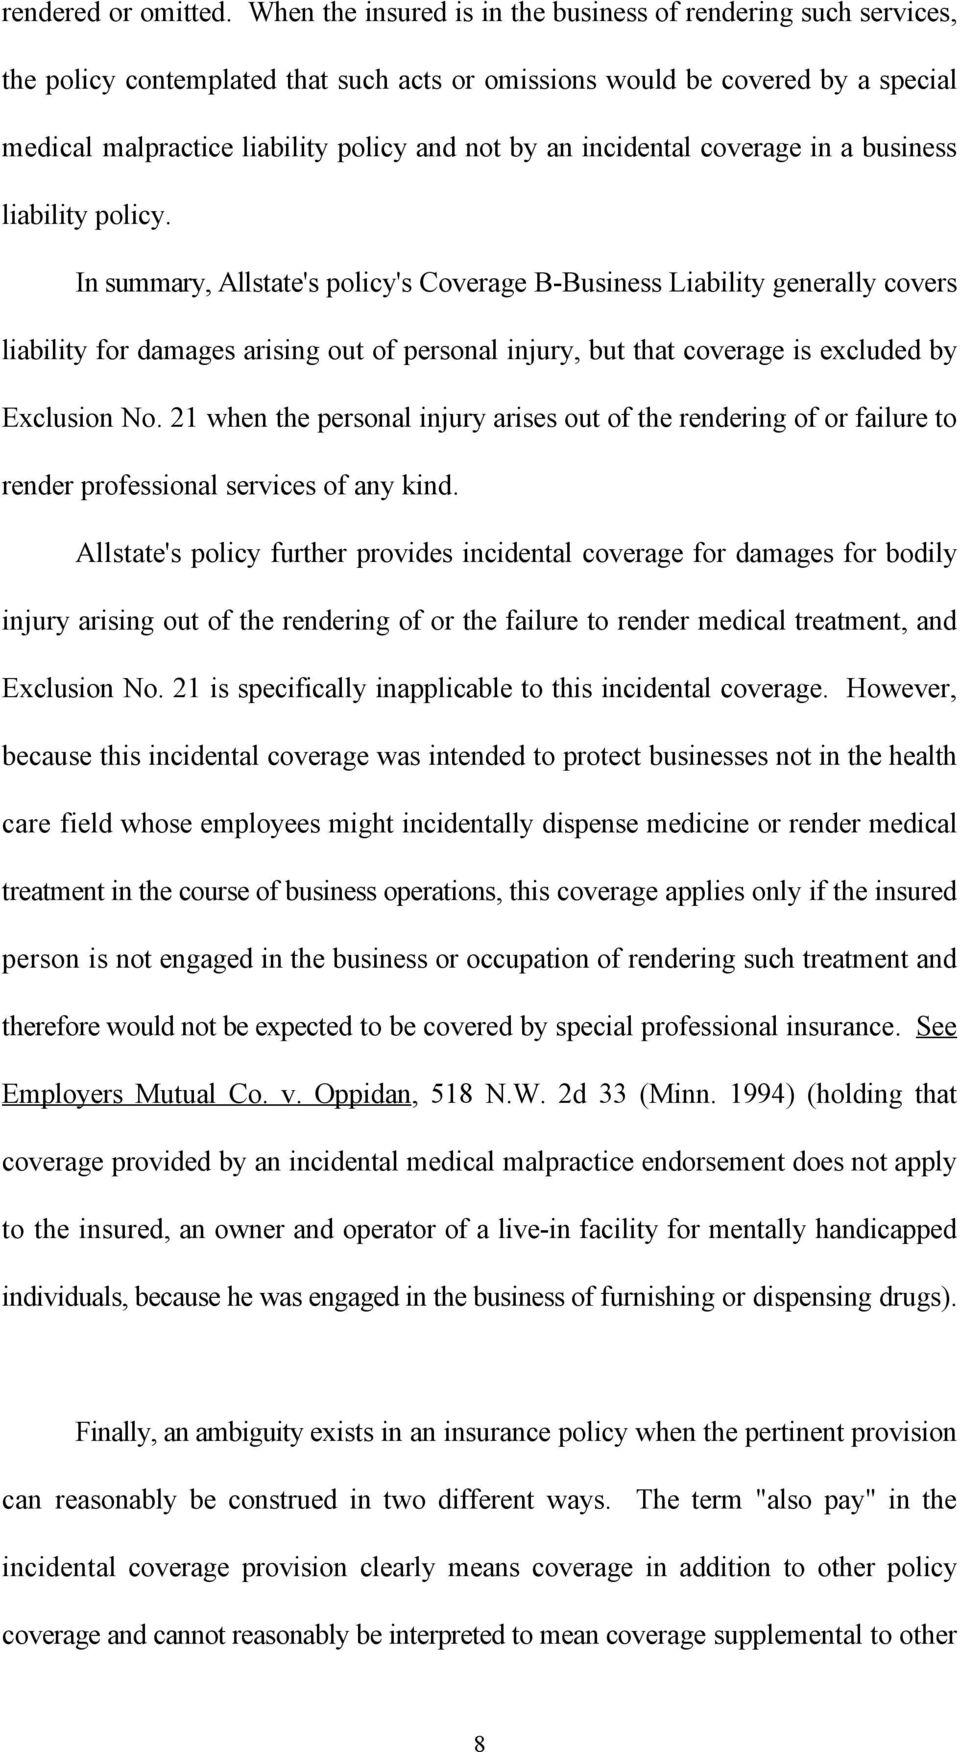 incidental coverage in a business liability policy.